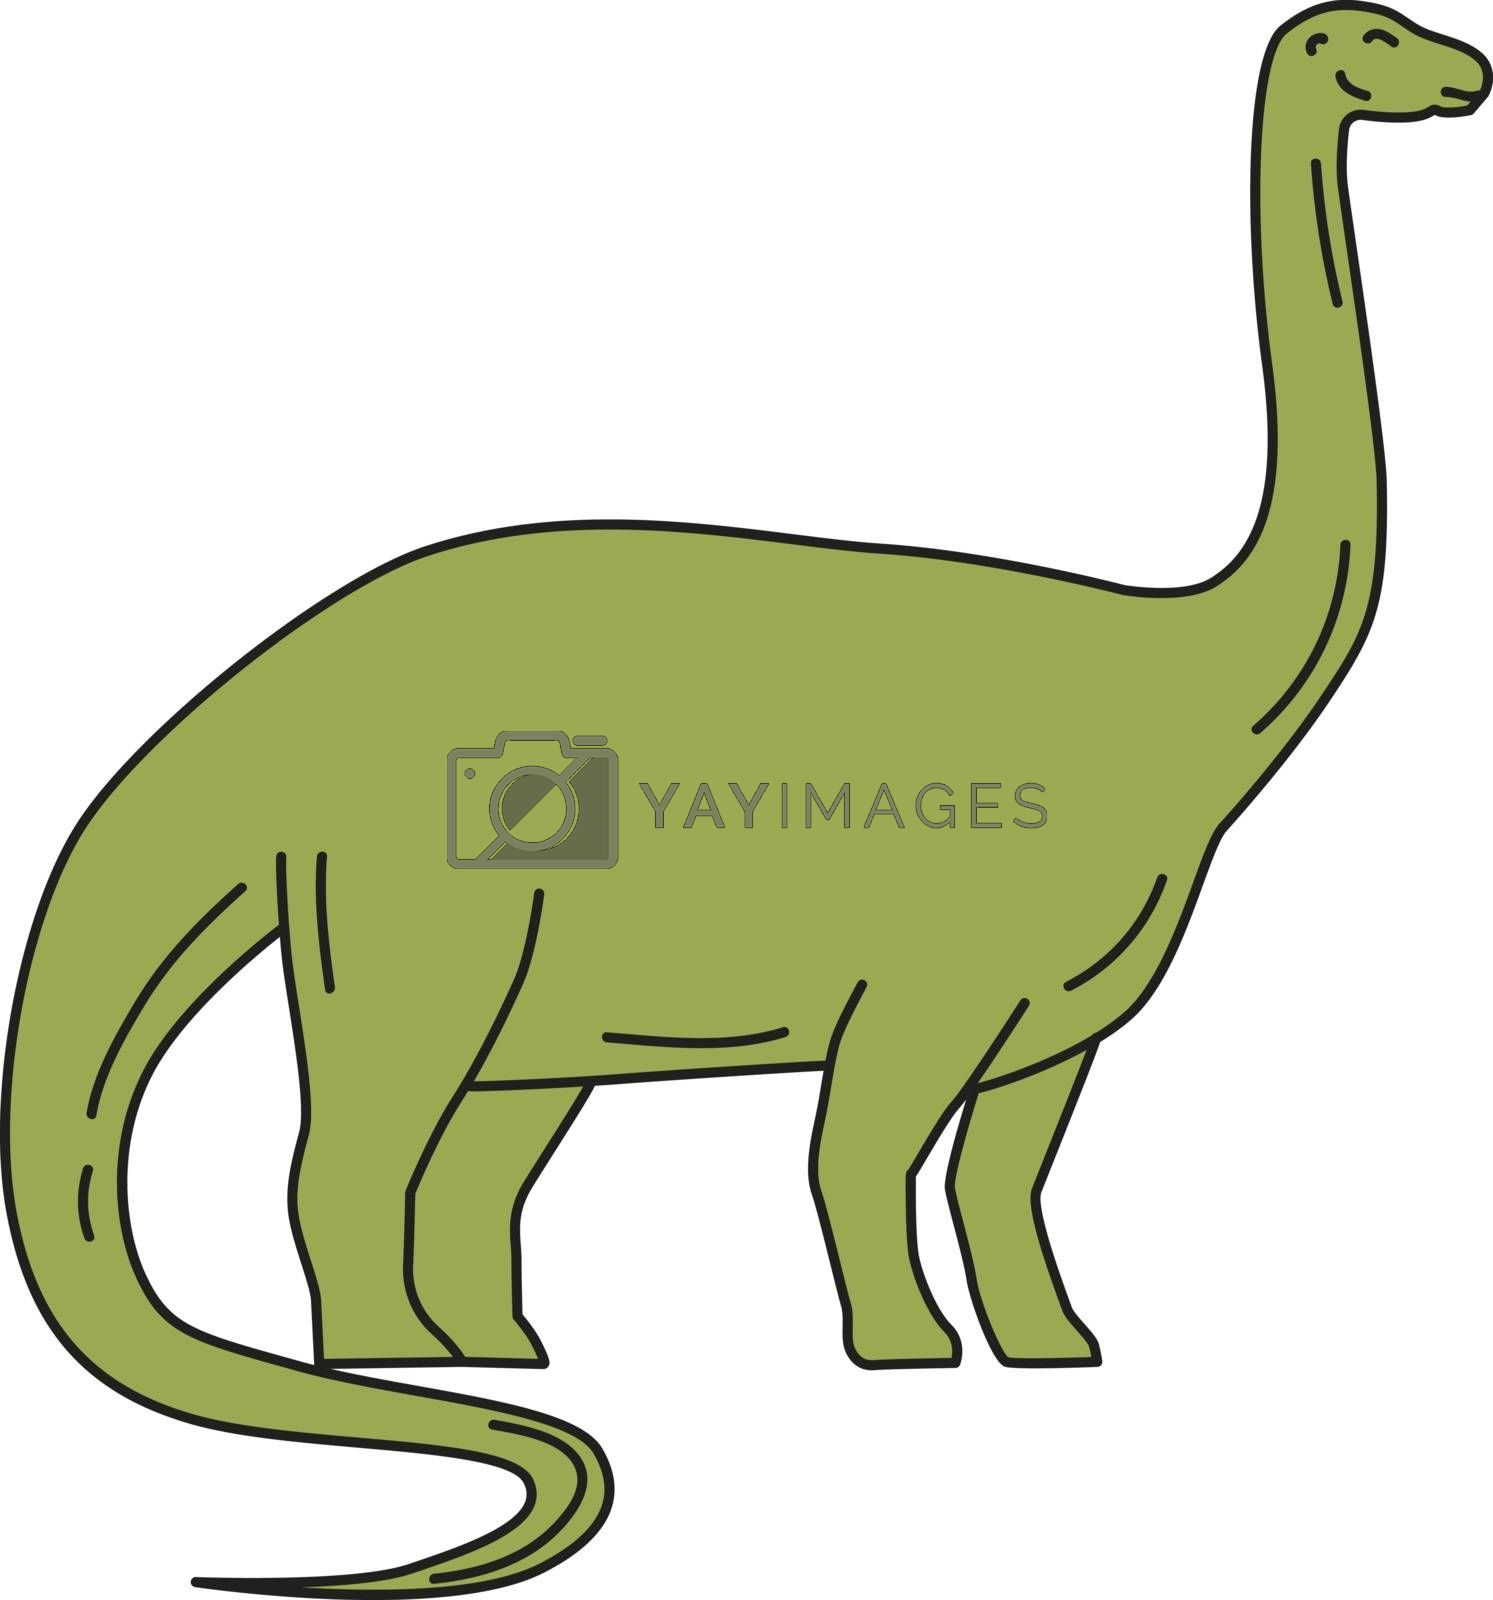 """Mono line style illustration of a Brontosaurus meaning """"thunder lizard, a genus of gigantic quadruped sauropod dinosaurs that lived in the late Jurrasic epoch viewed from the side set on isolated white background."""